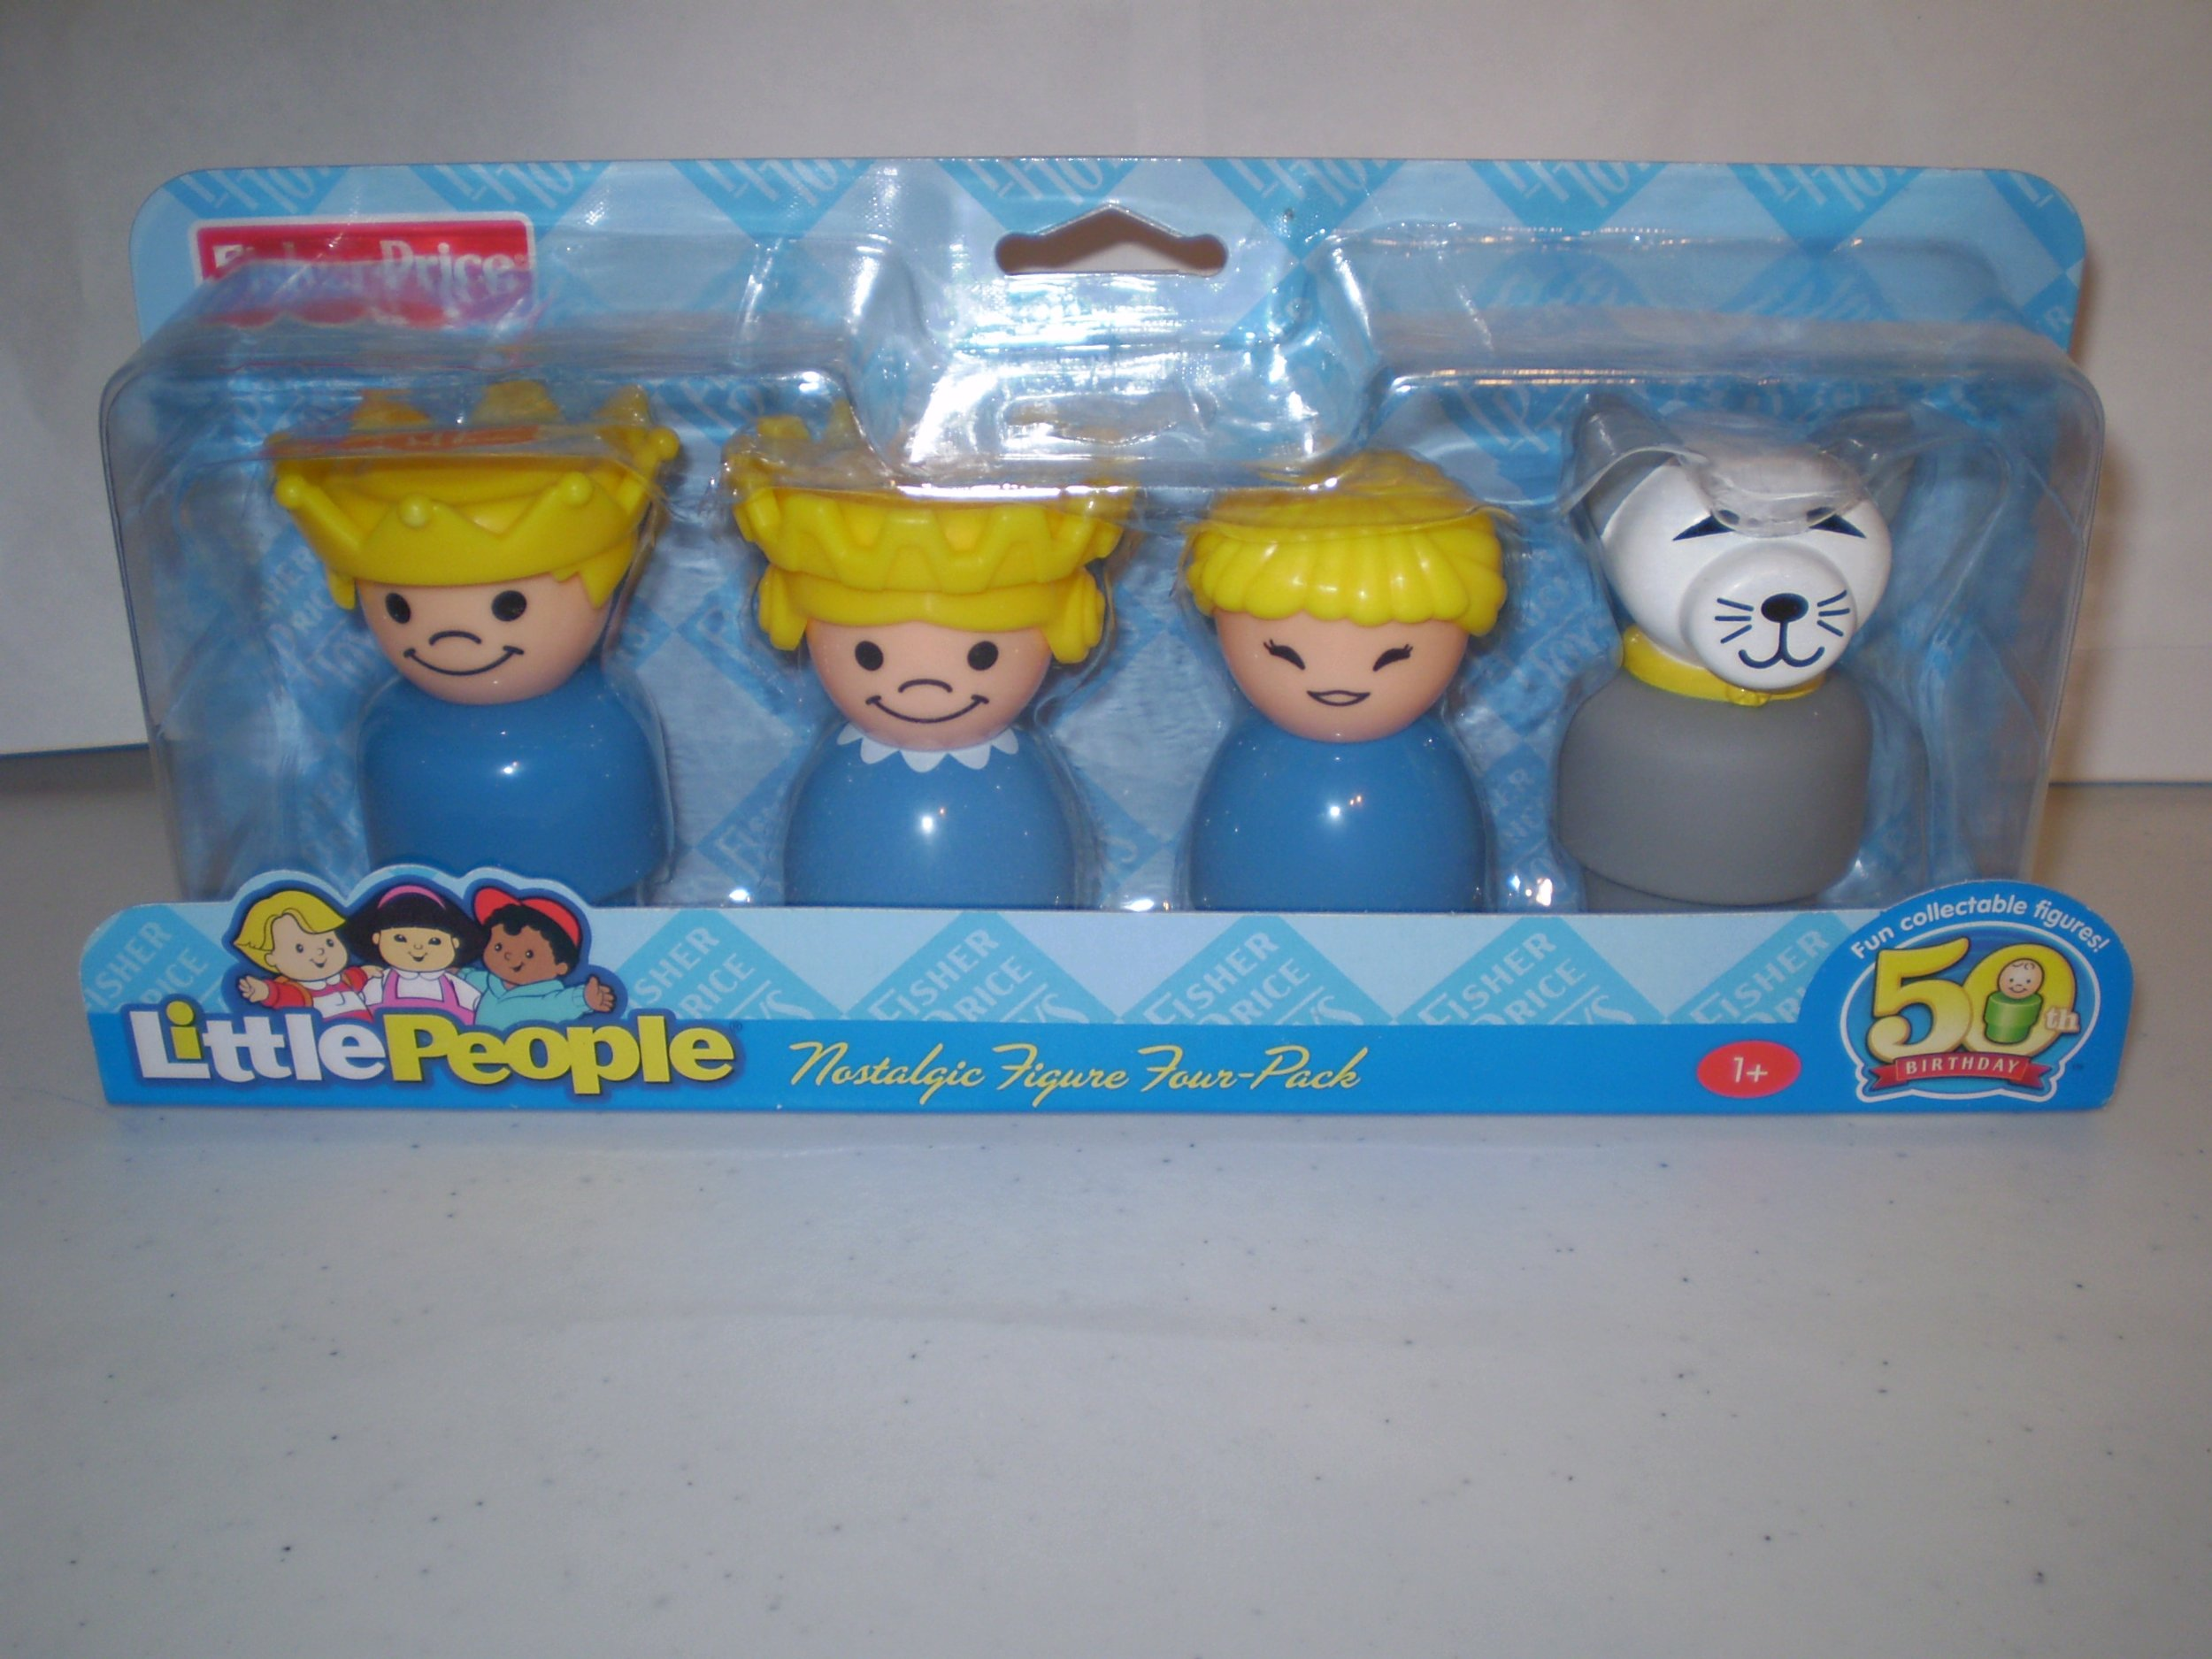 Little People 50th Birthday Nostalgic Figure Four-Pack - King, Queen, Girl, Cat